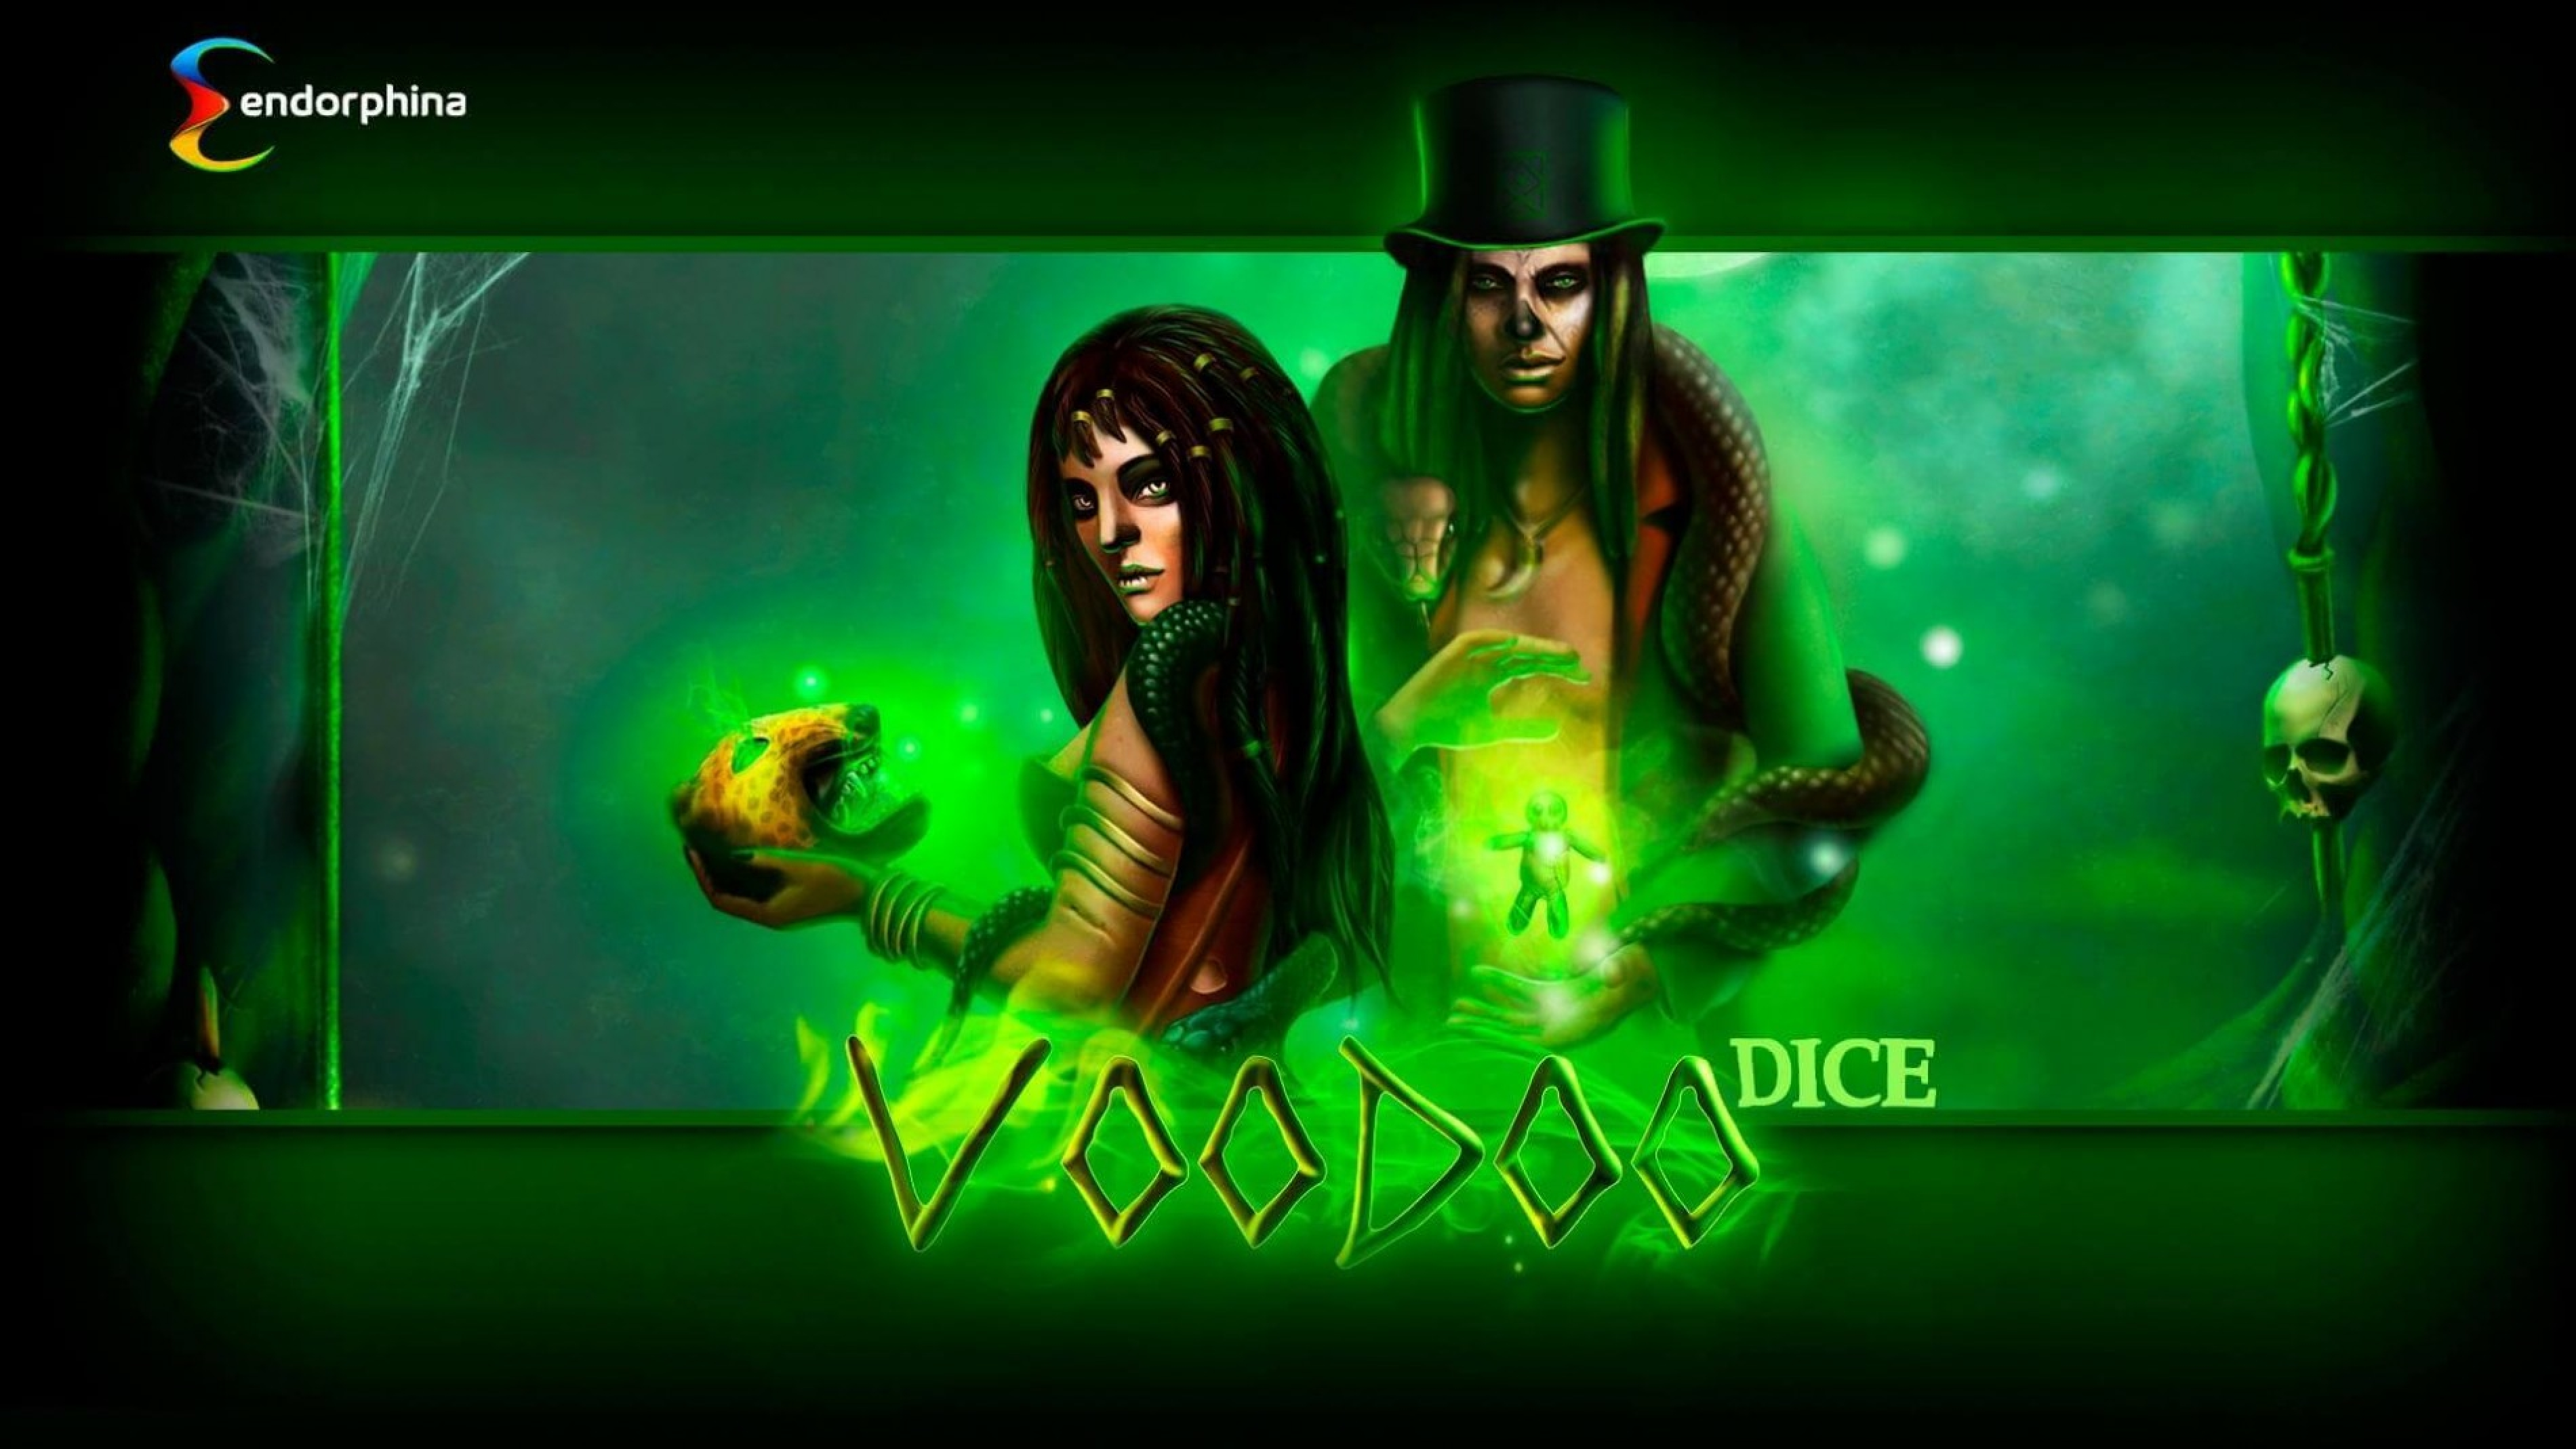 The Voodoo Dice Online Slot Demo Game by Endorphina